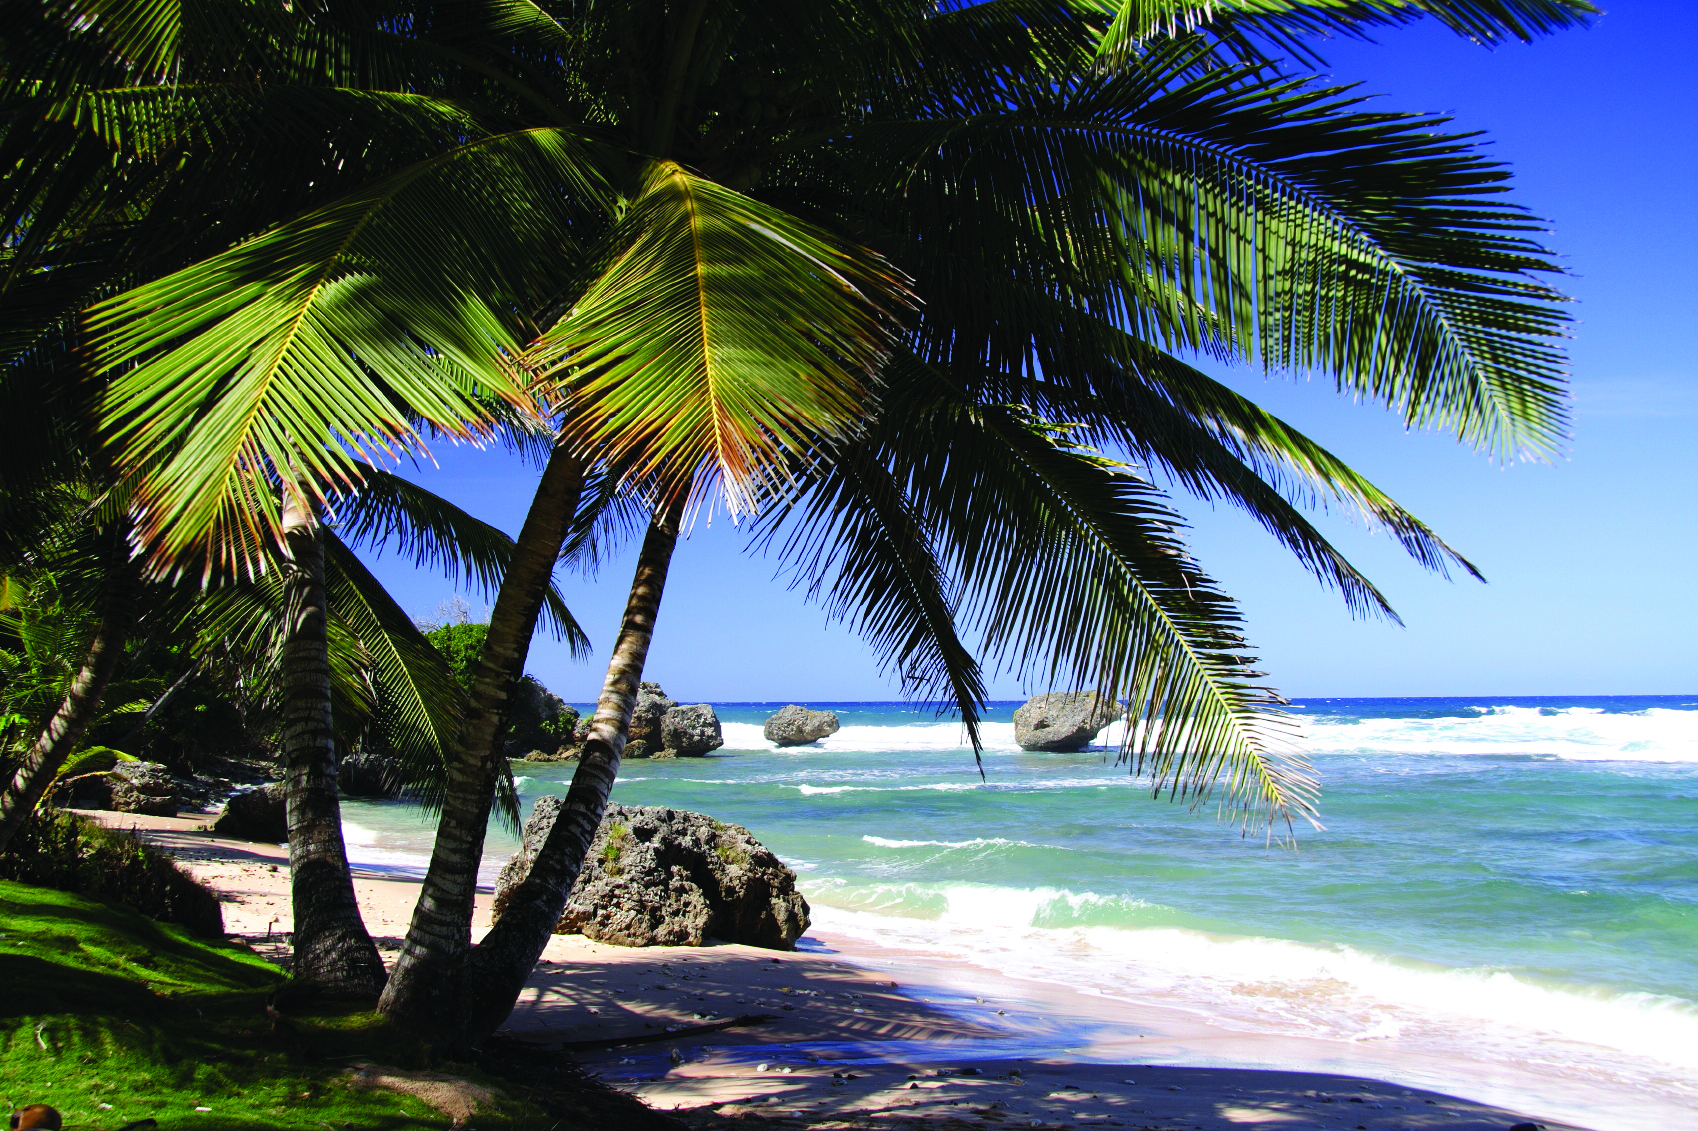 barbados_bigstock-Palms-on-the-white-beach-and-a-161072015.jpg